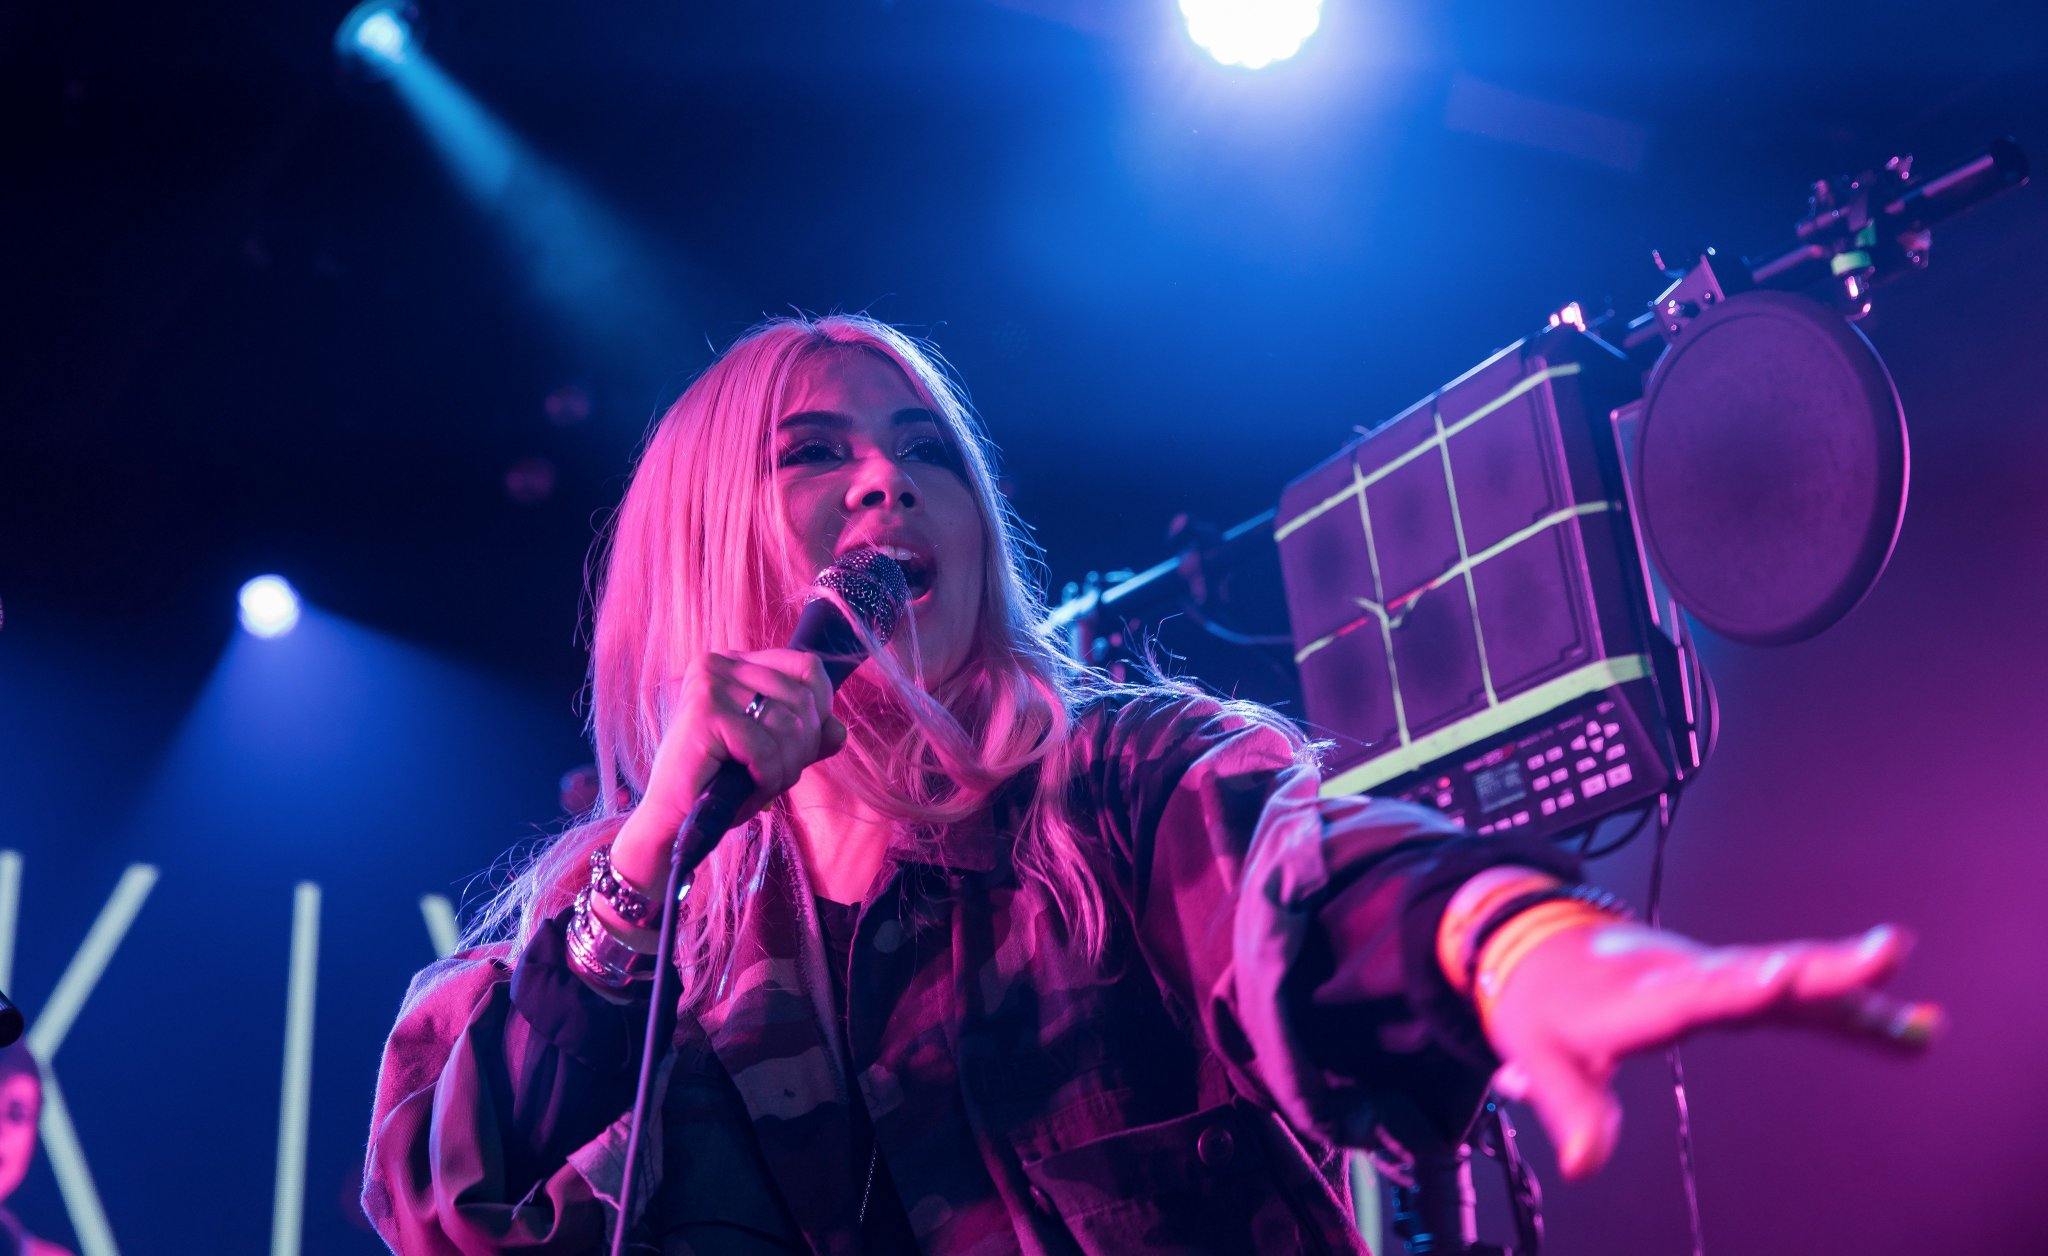 .@HayleyKiyoko stunned the crowd at #YouTube #SXSW. Don't miss her New Obsessions playlist → https://t.co/0GC5VNkXTt https://t.co/5ocHWypYbJ